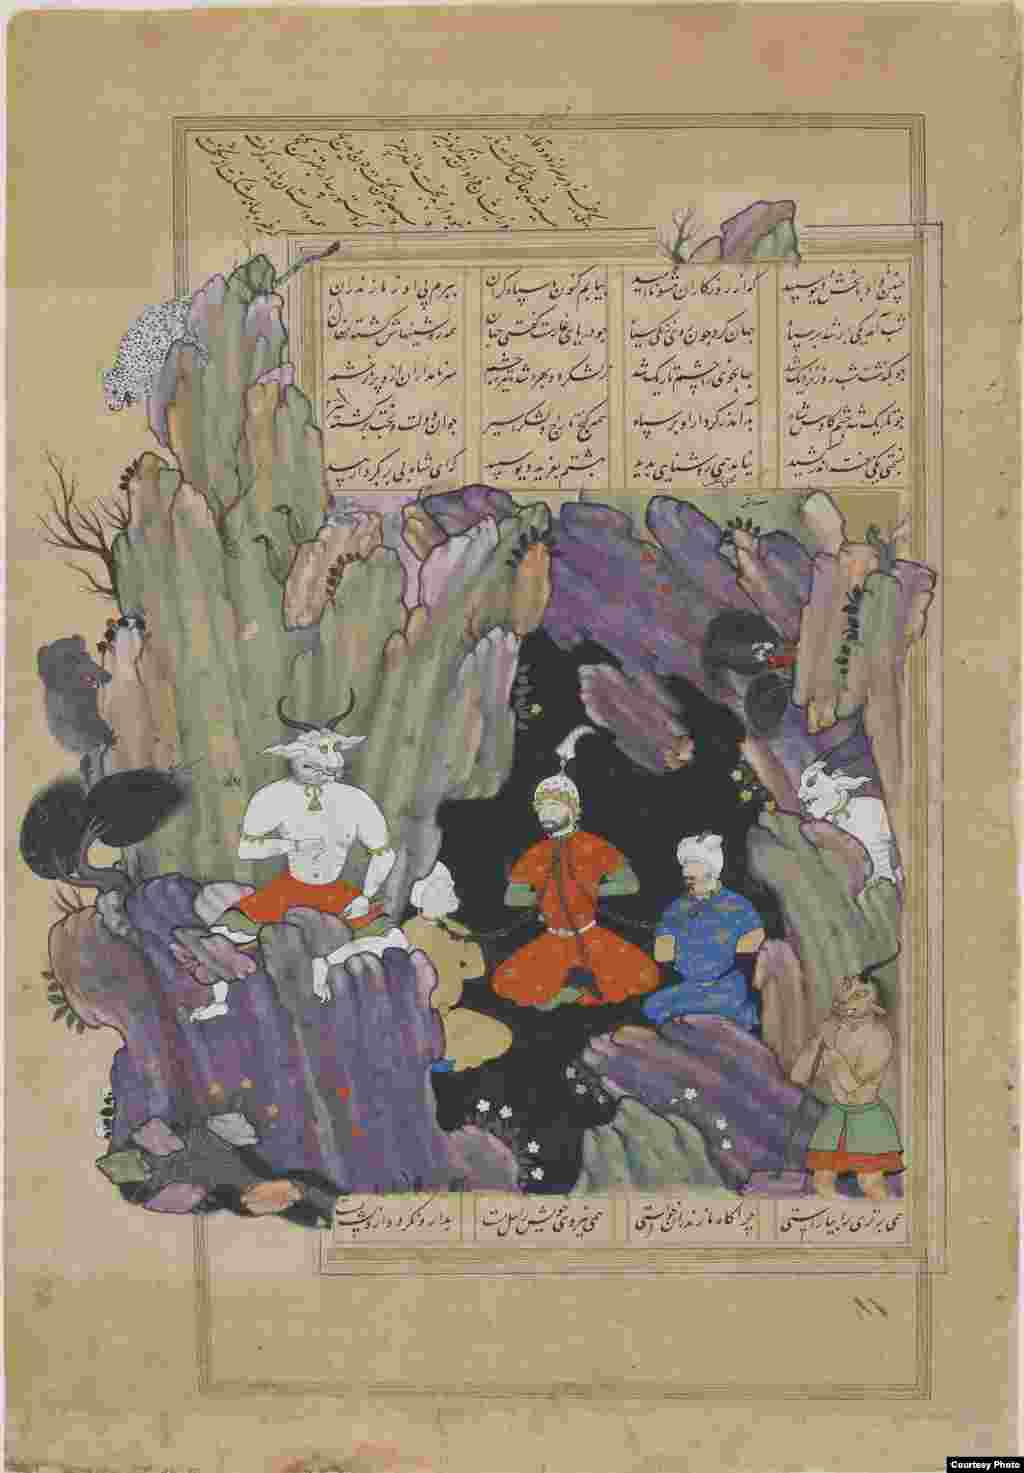 "The evil King Kay Kavus before he is saved from demons by the epic's hero, Rustam. ""Kay Kavus Chained In A Grotto,"" Qazvin, Iran, circa 1576-1577, from ""The Shahnameh"" (Book of Kings) by Firdawsi Photos courtesy of the Smithsonian Institute, Washington, D.C."